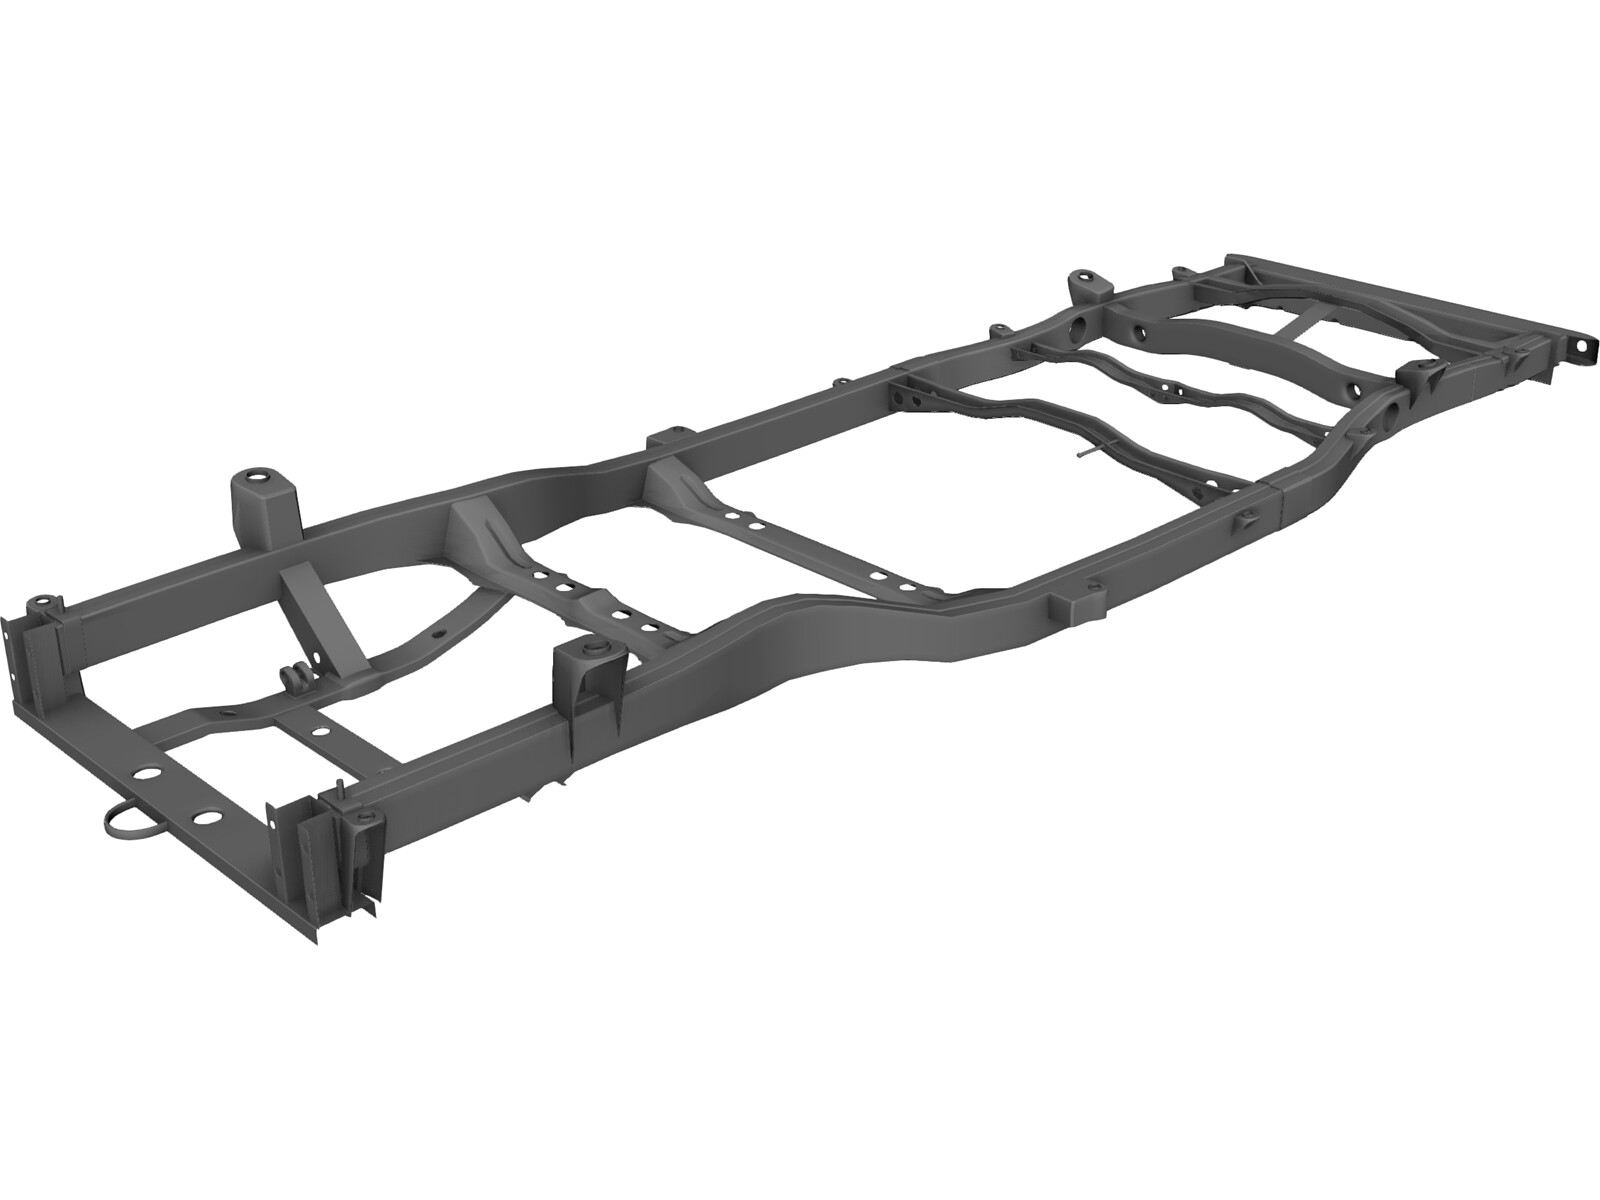 Range Rover Chassis (2010) 3D Model